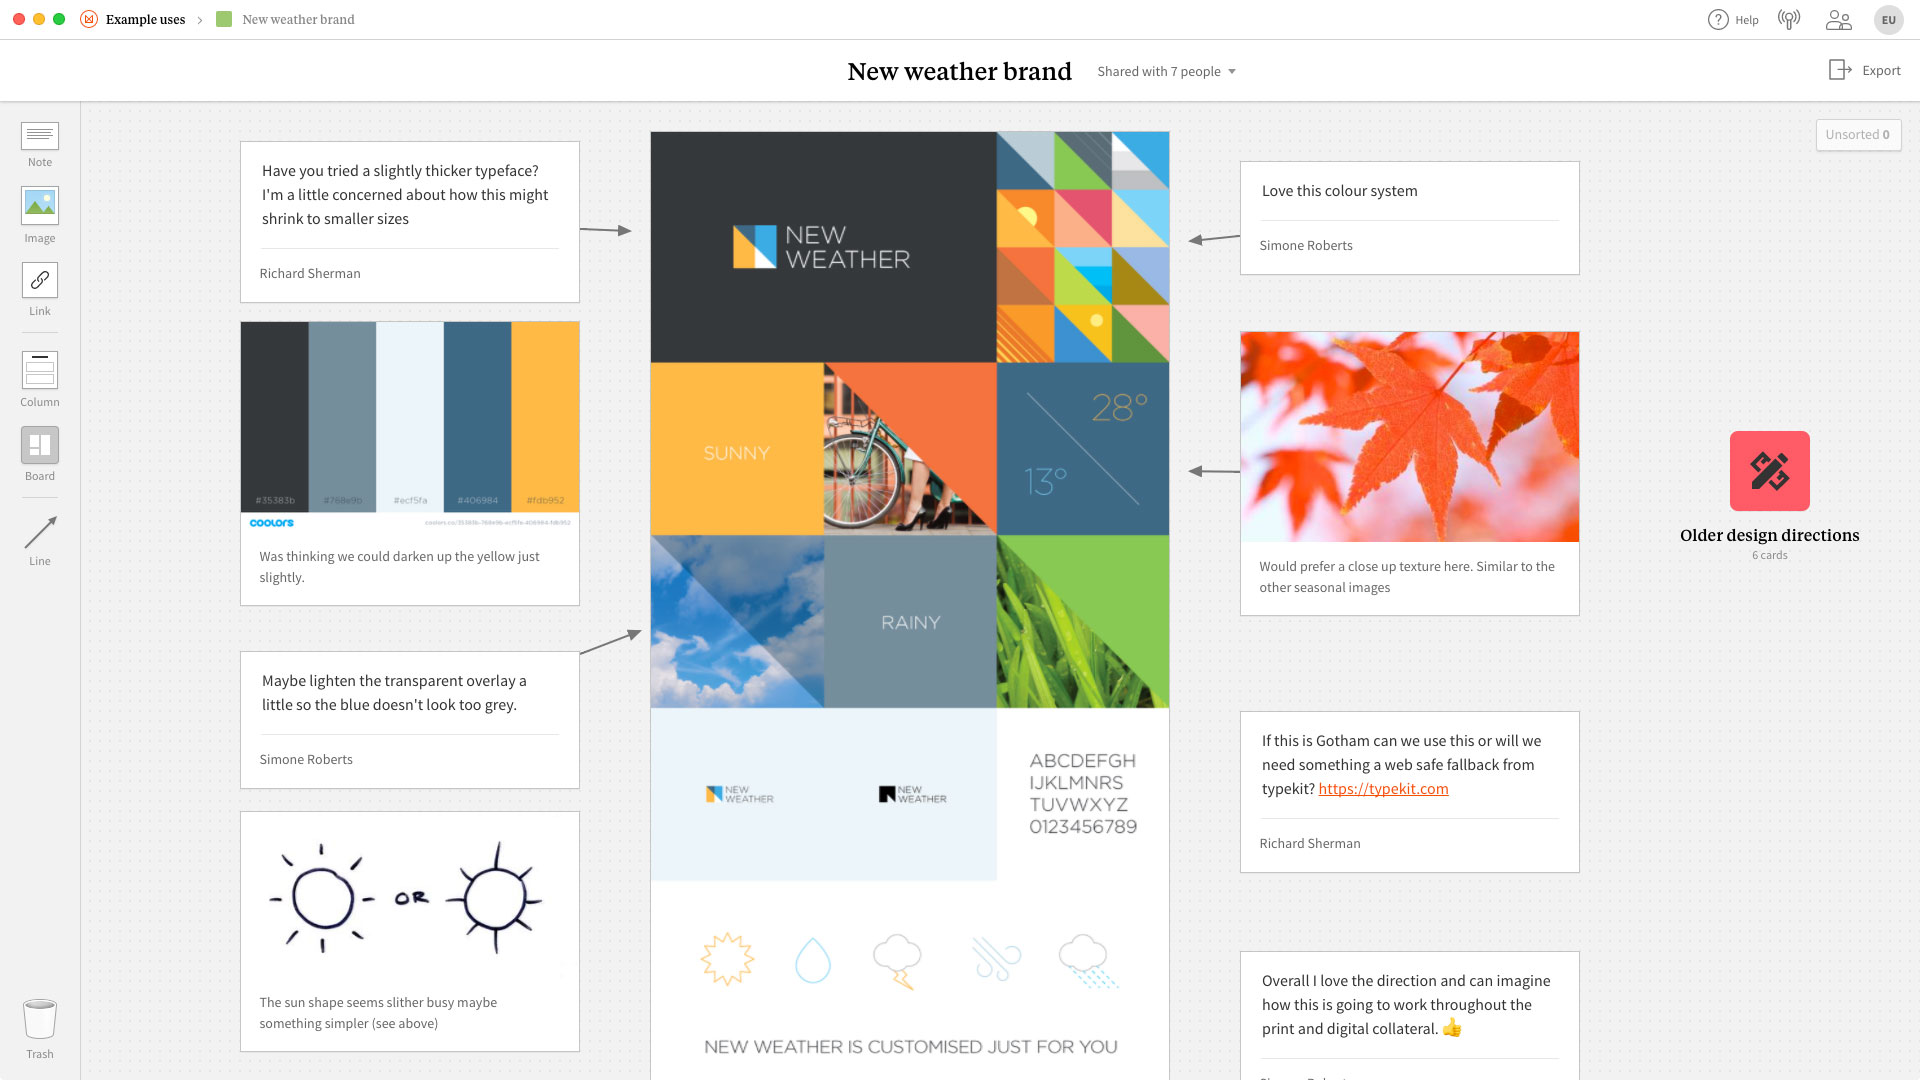 An example of using Milanote to get feedback on a mockup or sketch